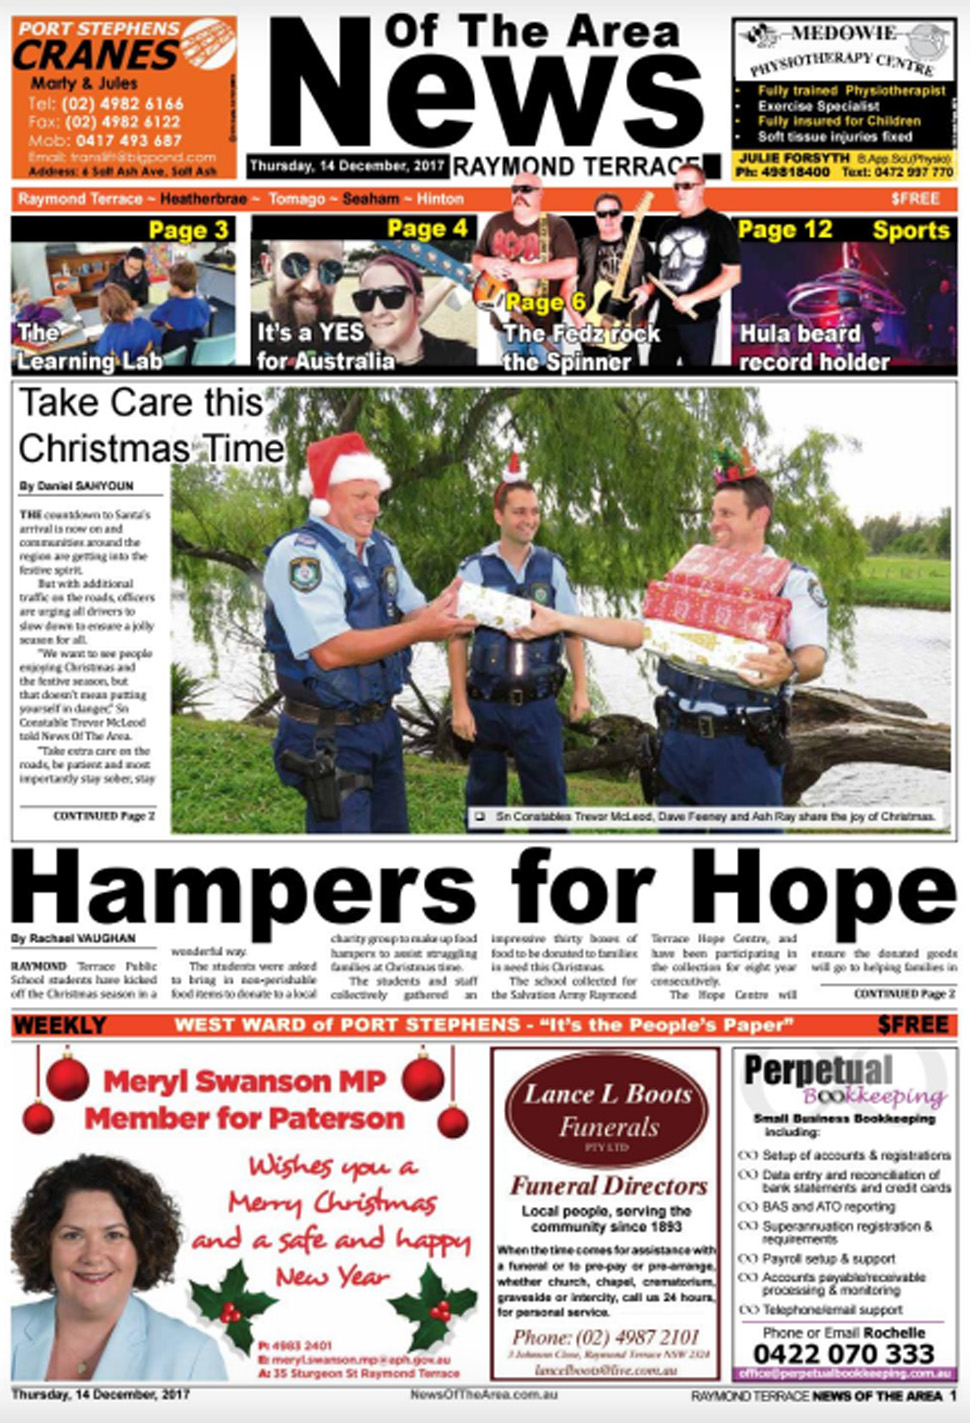 raymond terrace news of the area 14 december 2017 news